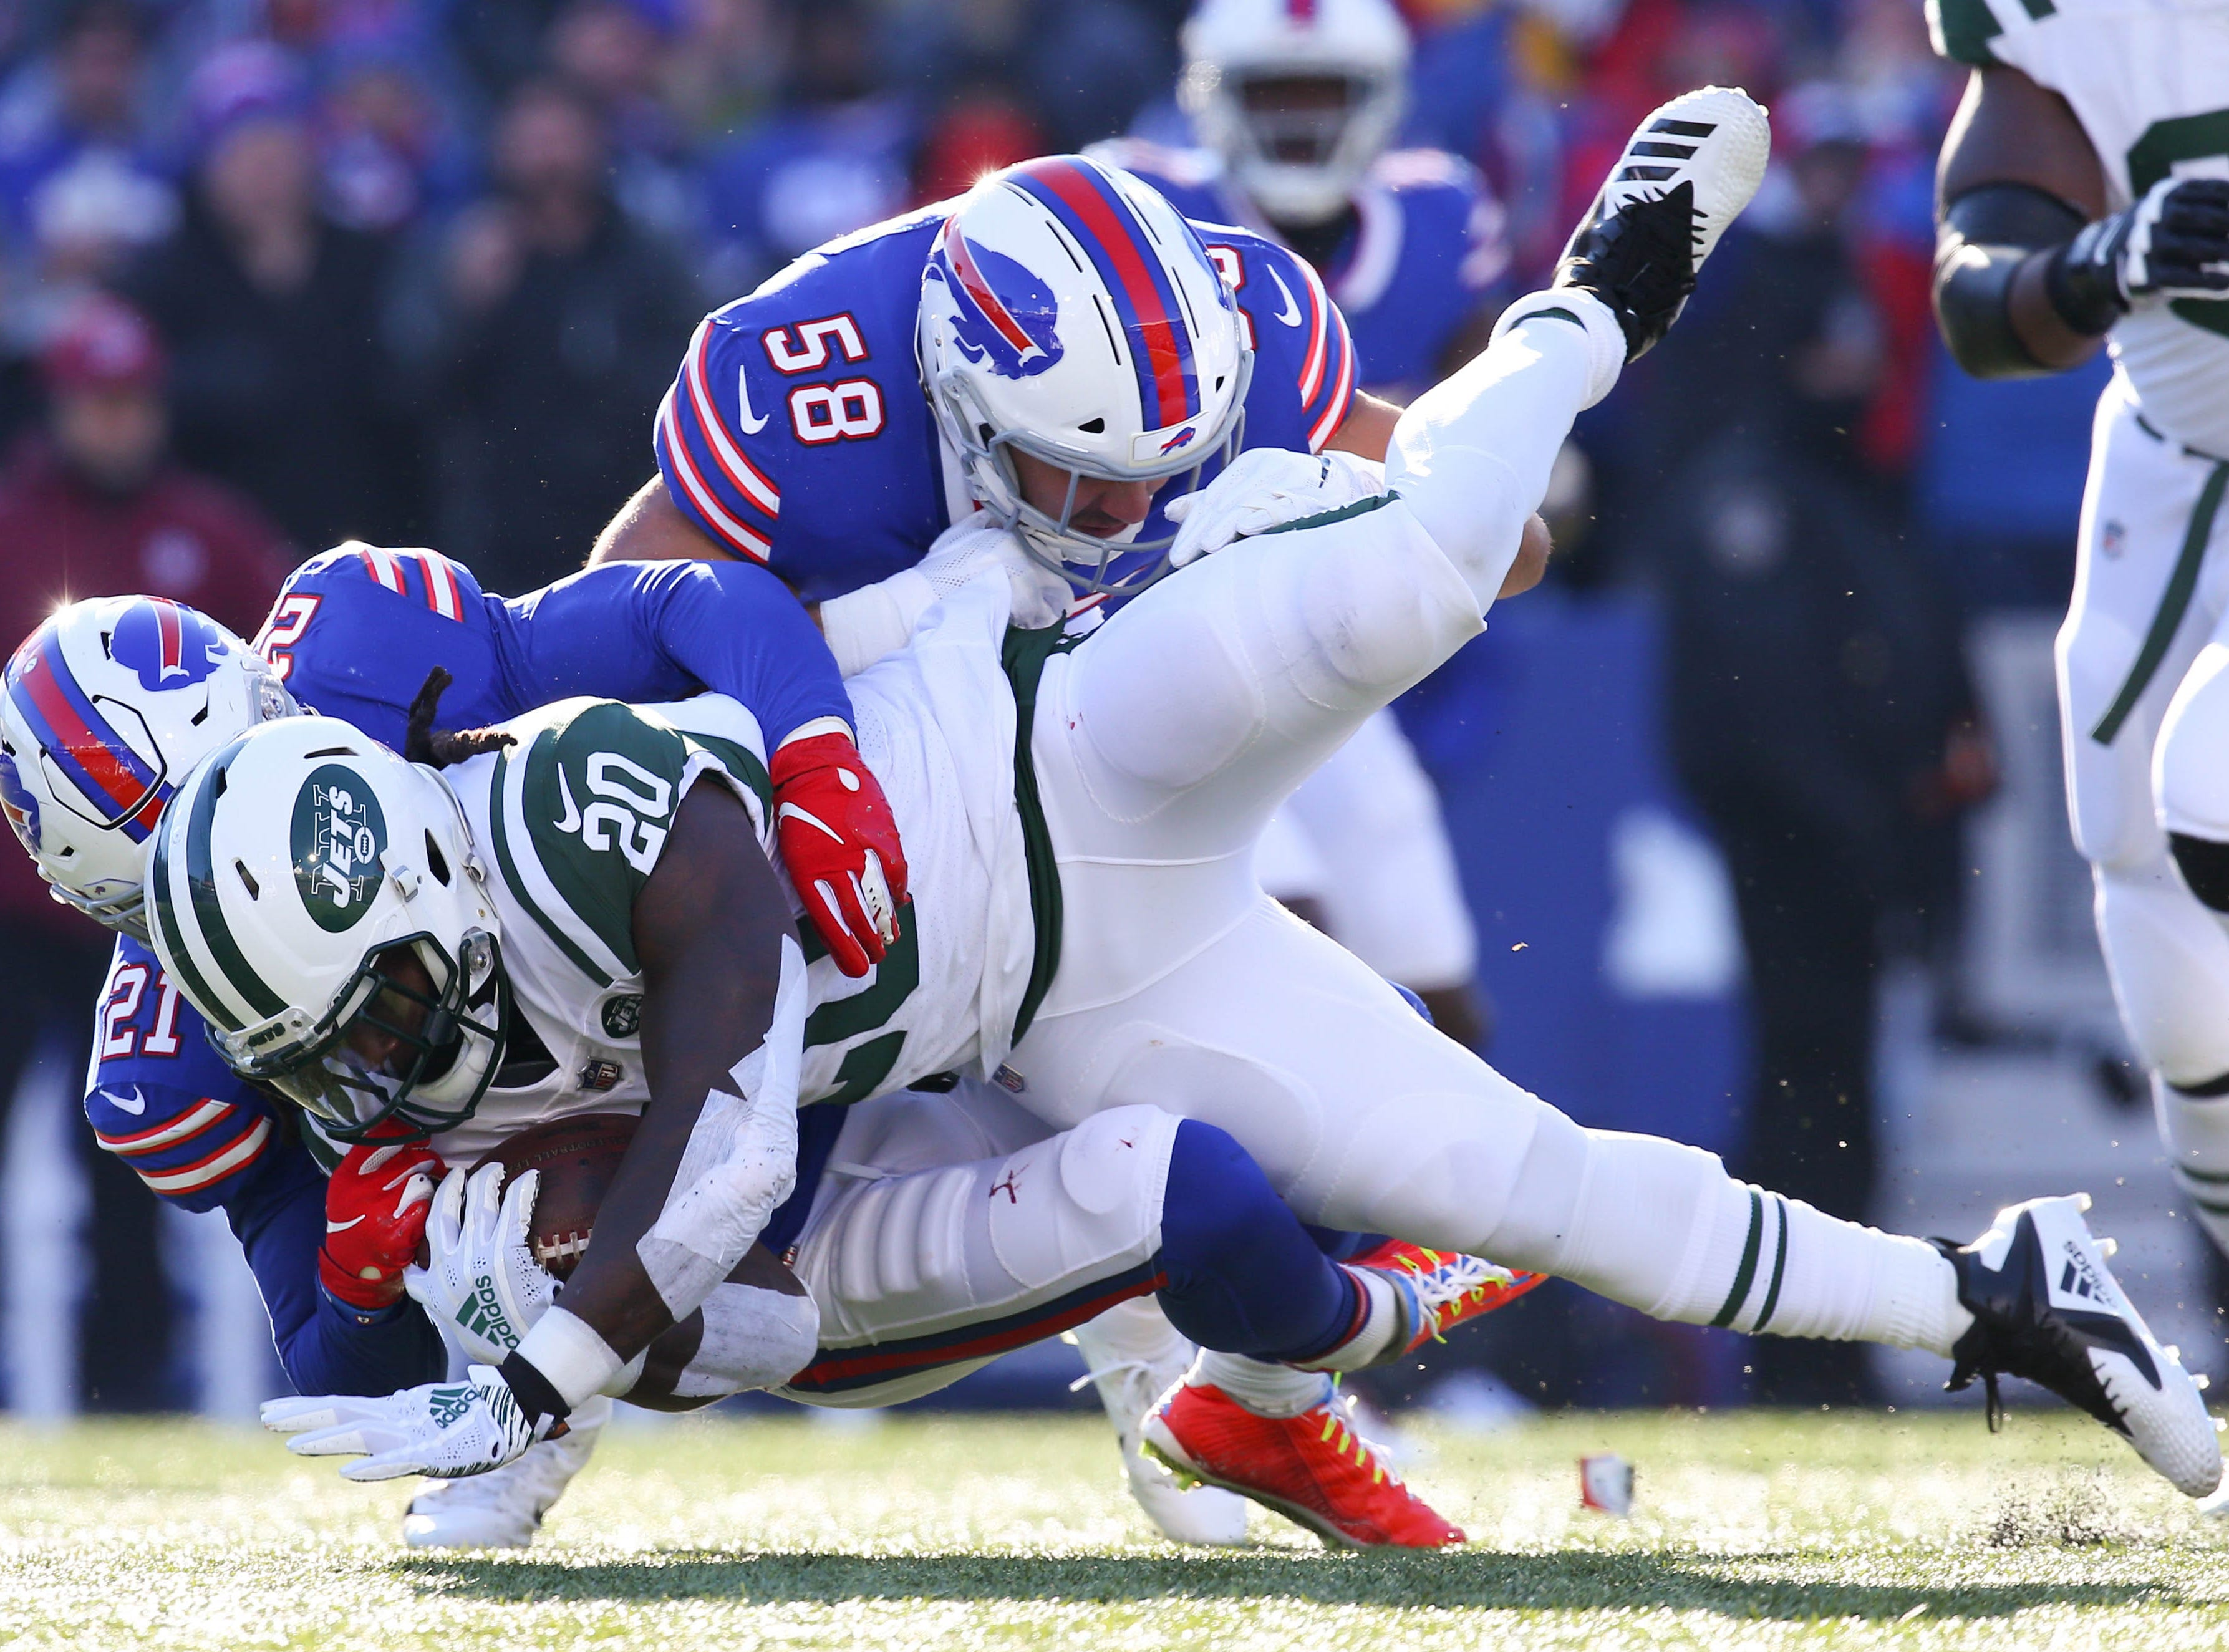 Dec 9, 2018; Orchard Park, NY, USA; Buffalo Bills free safety Jordan Poyer (21) and outside linebacker Matt Milano (58) combine to tackle New York Jets running back Isaiah Crowell (20) on a run during the first quarter at New Era Field. Mandatory Credit: Rich Barnes-USA TODAY Sports